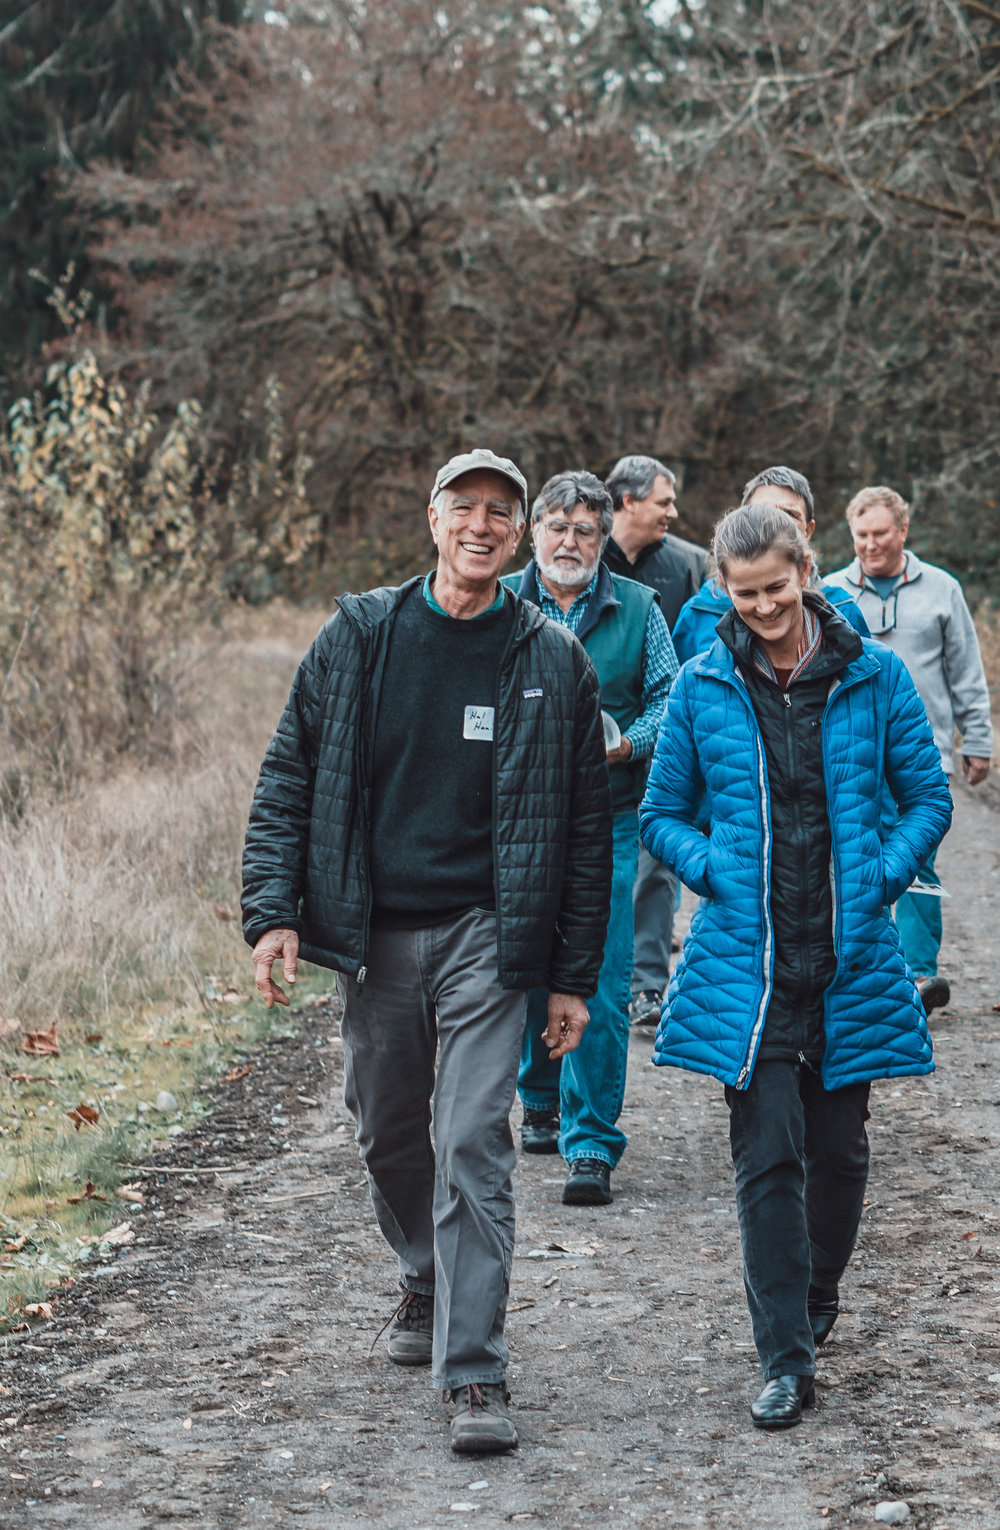 Floodplains by Design leaders from around the state tour the South Fork of the Puyallup River, part of the Orting FbD project. Photo by Courtney Baxter / The Nature Conservancy.